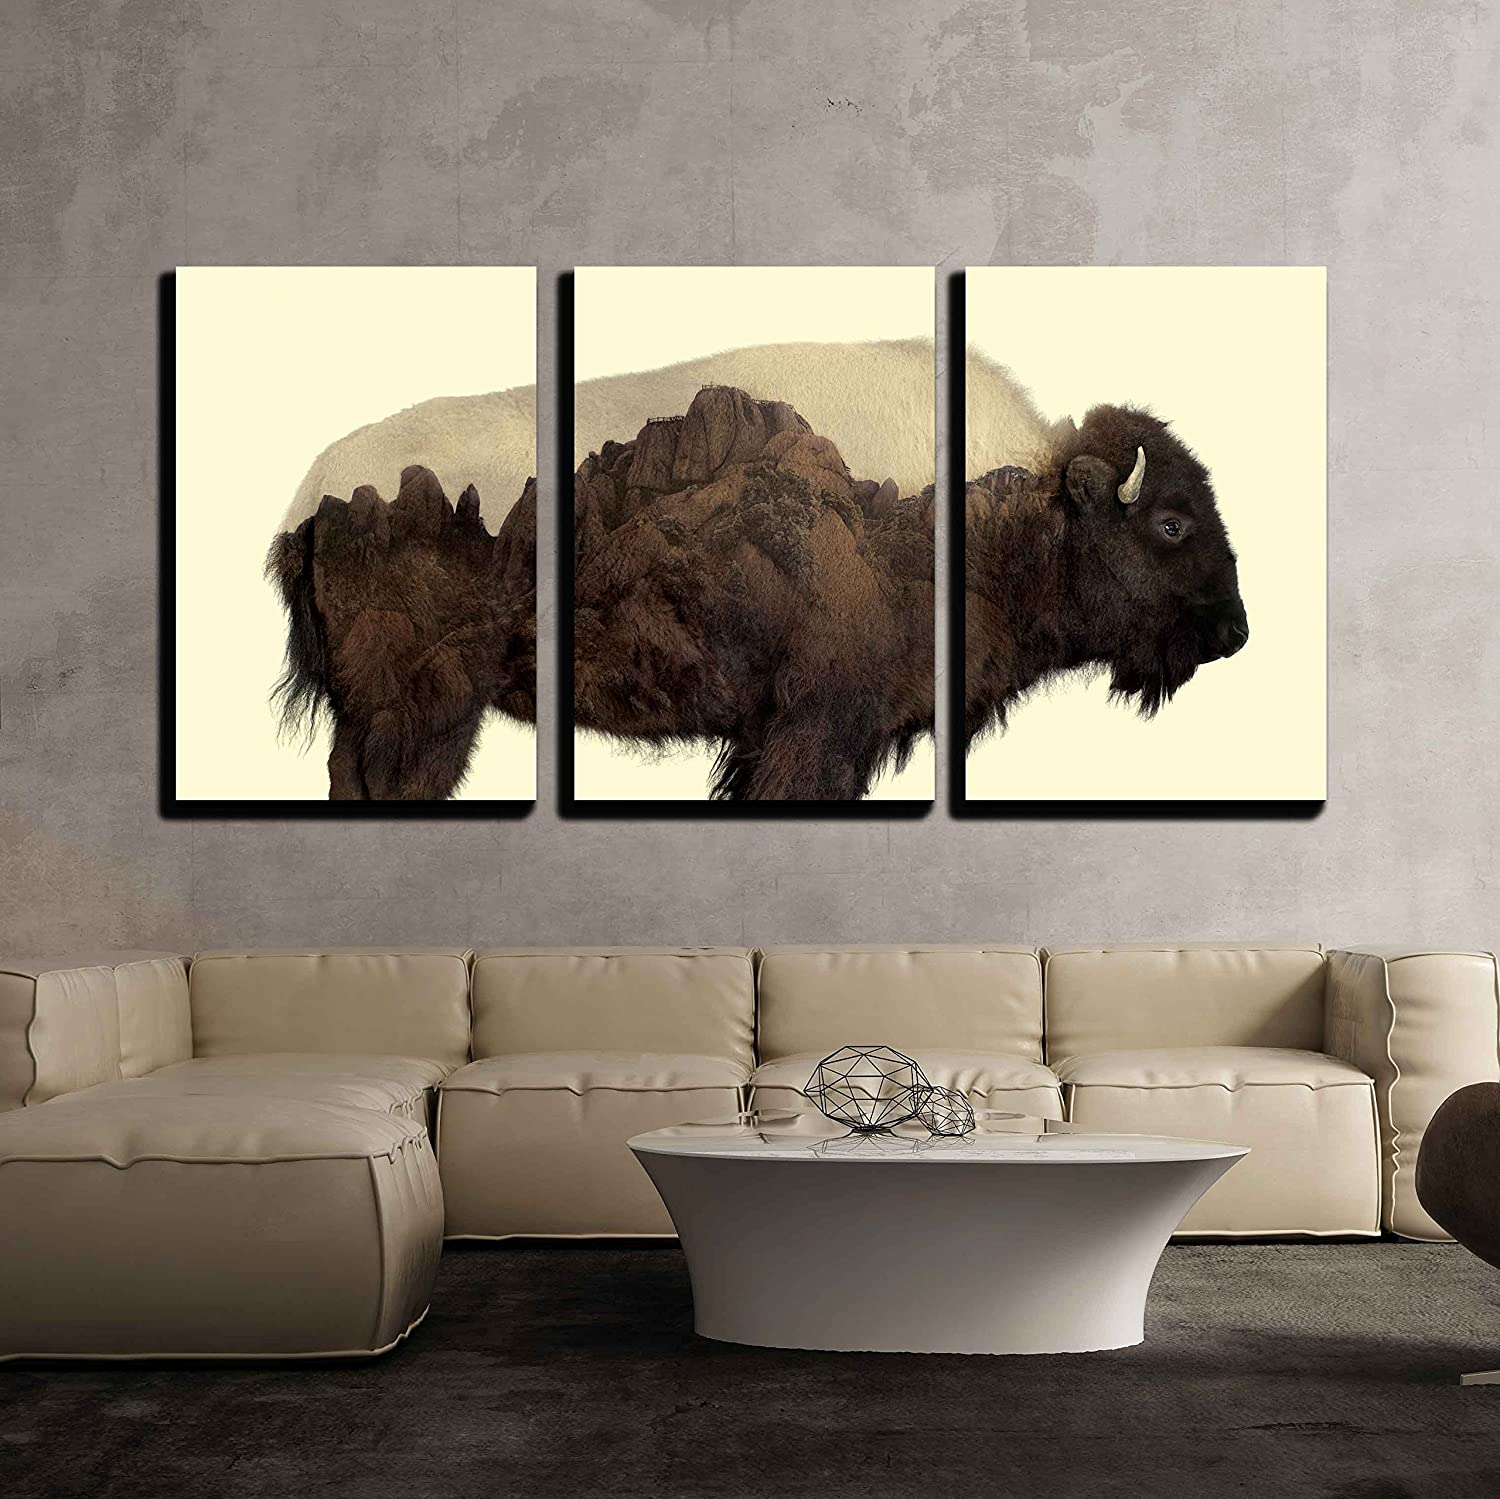 Wall26 art prints framed art canvas prints greeting wall26 3 piece canvas wall art double exposure graphic of a buffalo and rocky mountains modern home decor stretched and framed ready to hang jeuxipadfo Choice Image